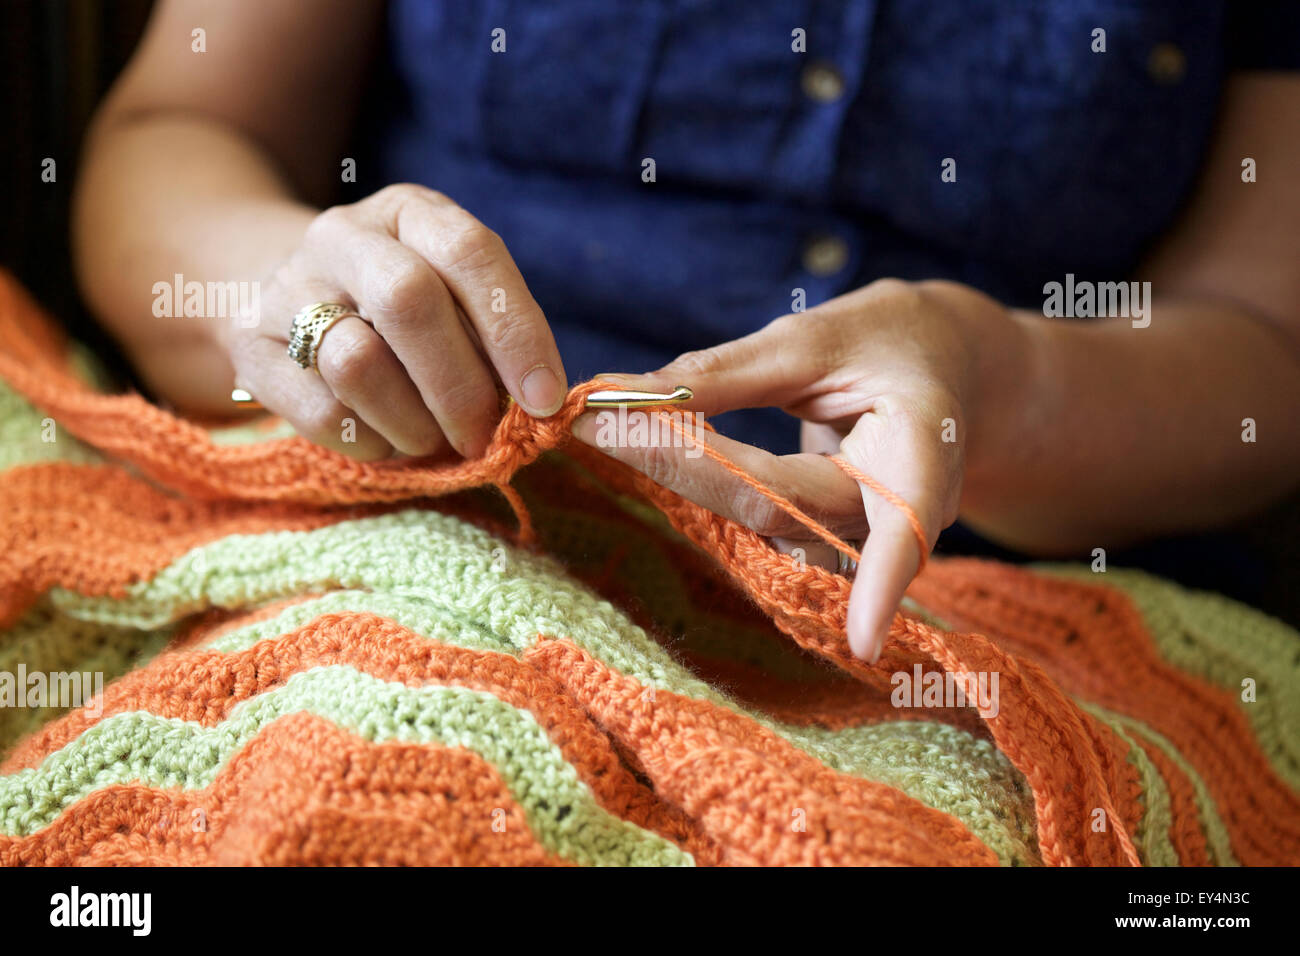 Close up picture of a Caucasian woman crocheting at home - Stock Image